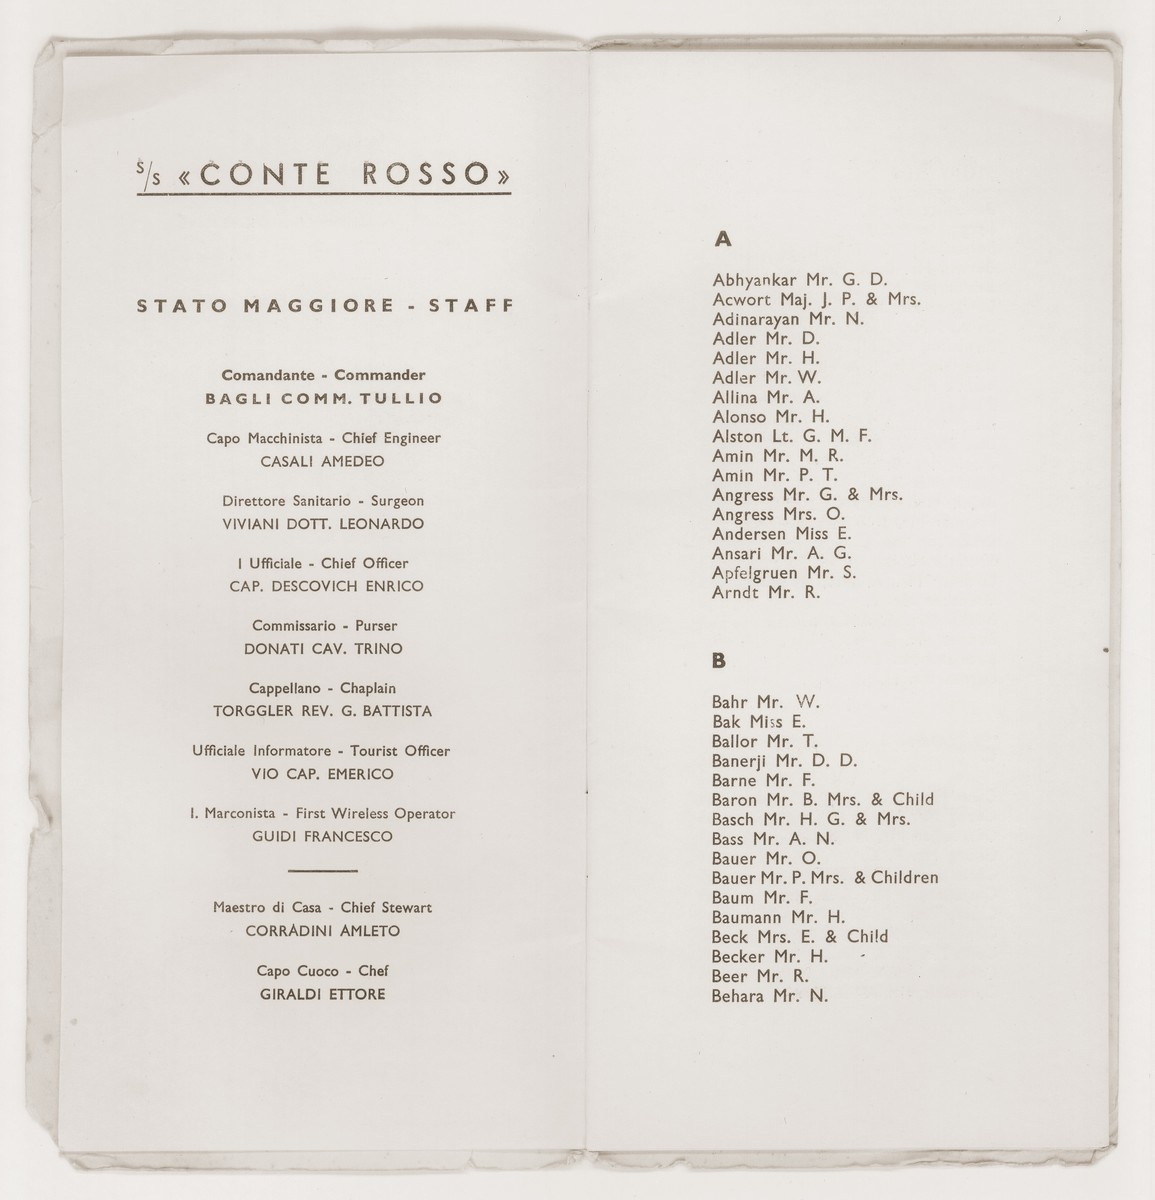 A passenger list issued to Siegfried and Walter Jacobsberg by Lloyd Triestino lines during their trip from Trieste to Shanghai aboard the SS Conte Rosso.